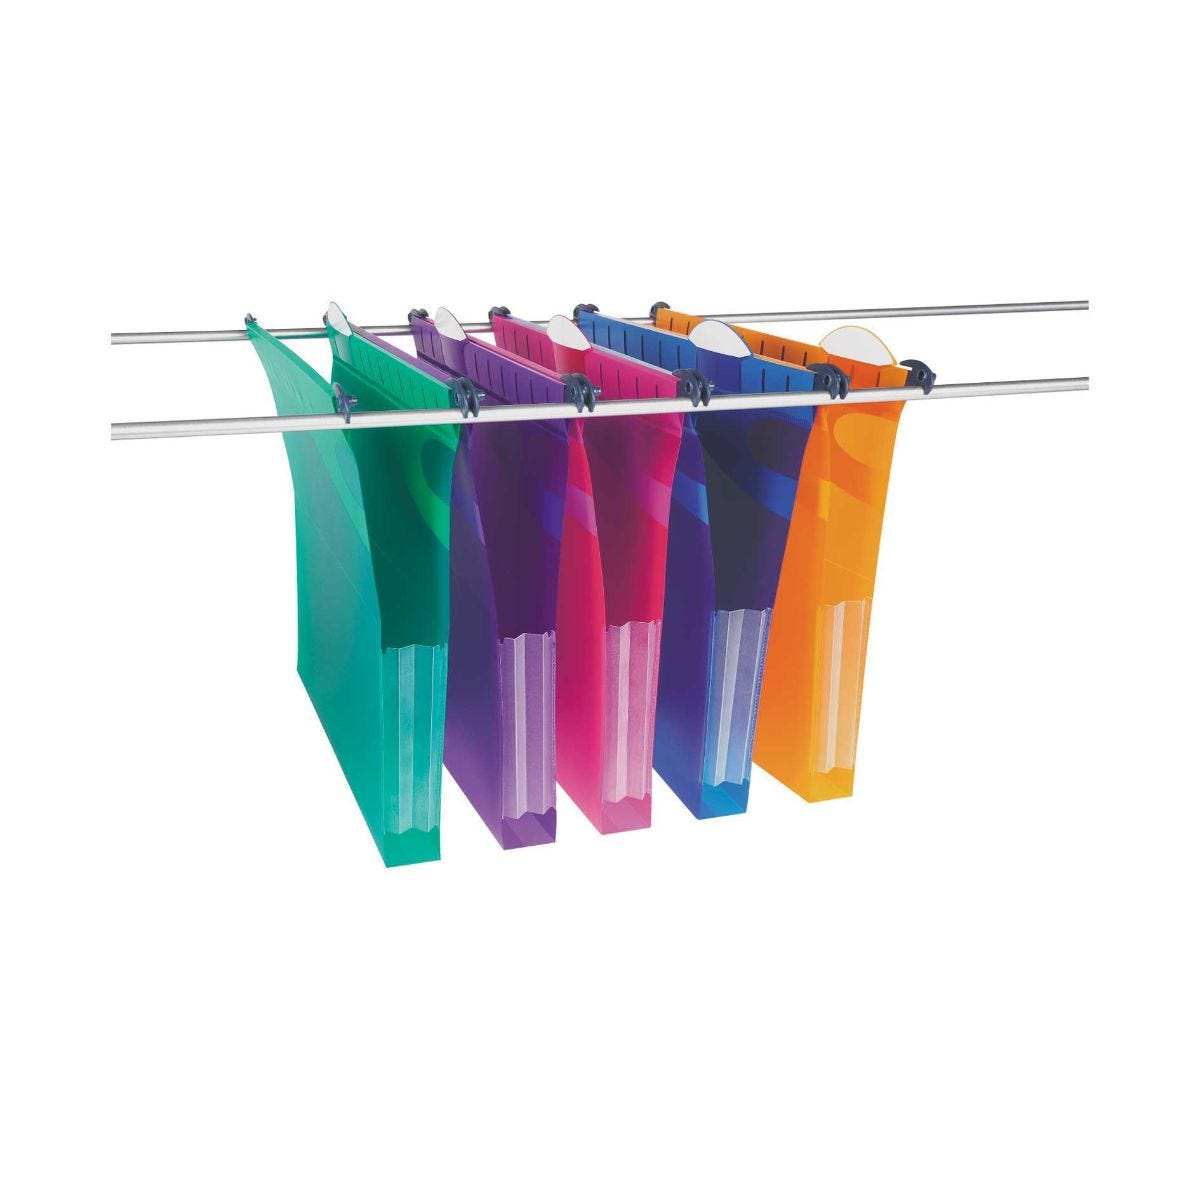 Hanging Files For Filing Cabinets Suspension Files Filing Folders Office Supplies Ryman